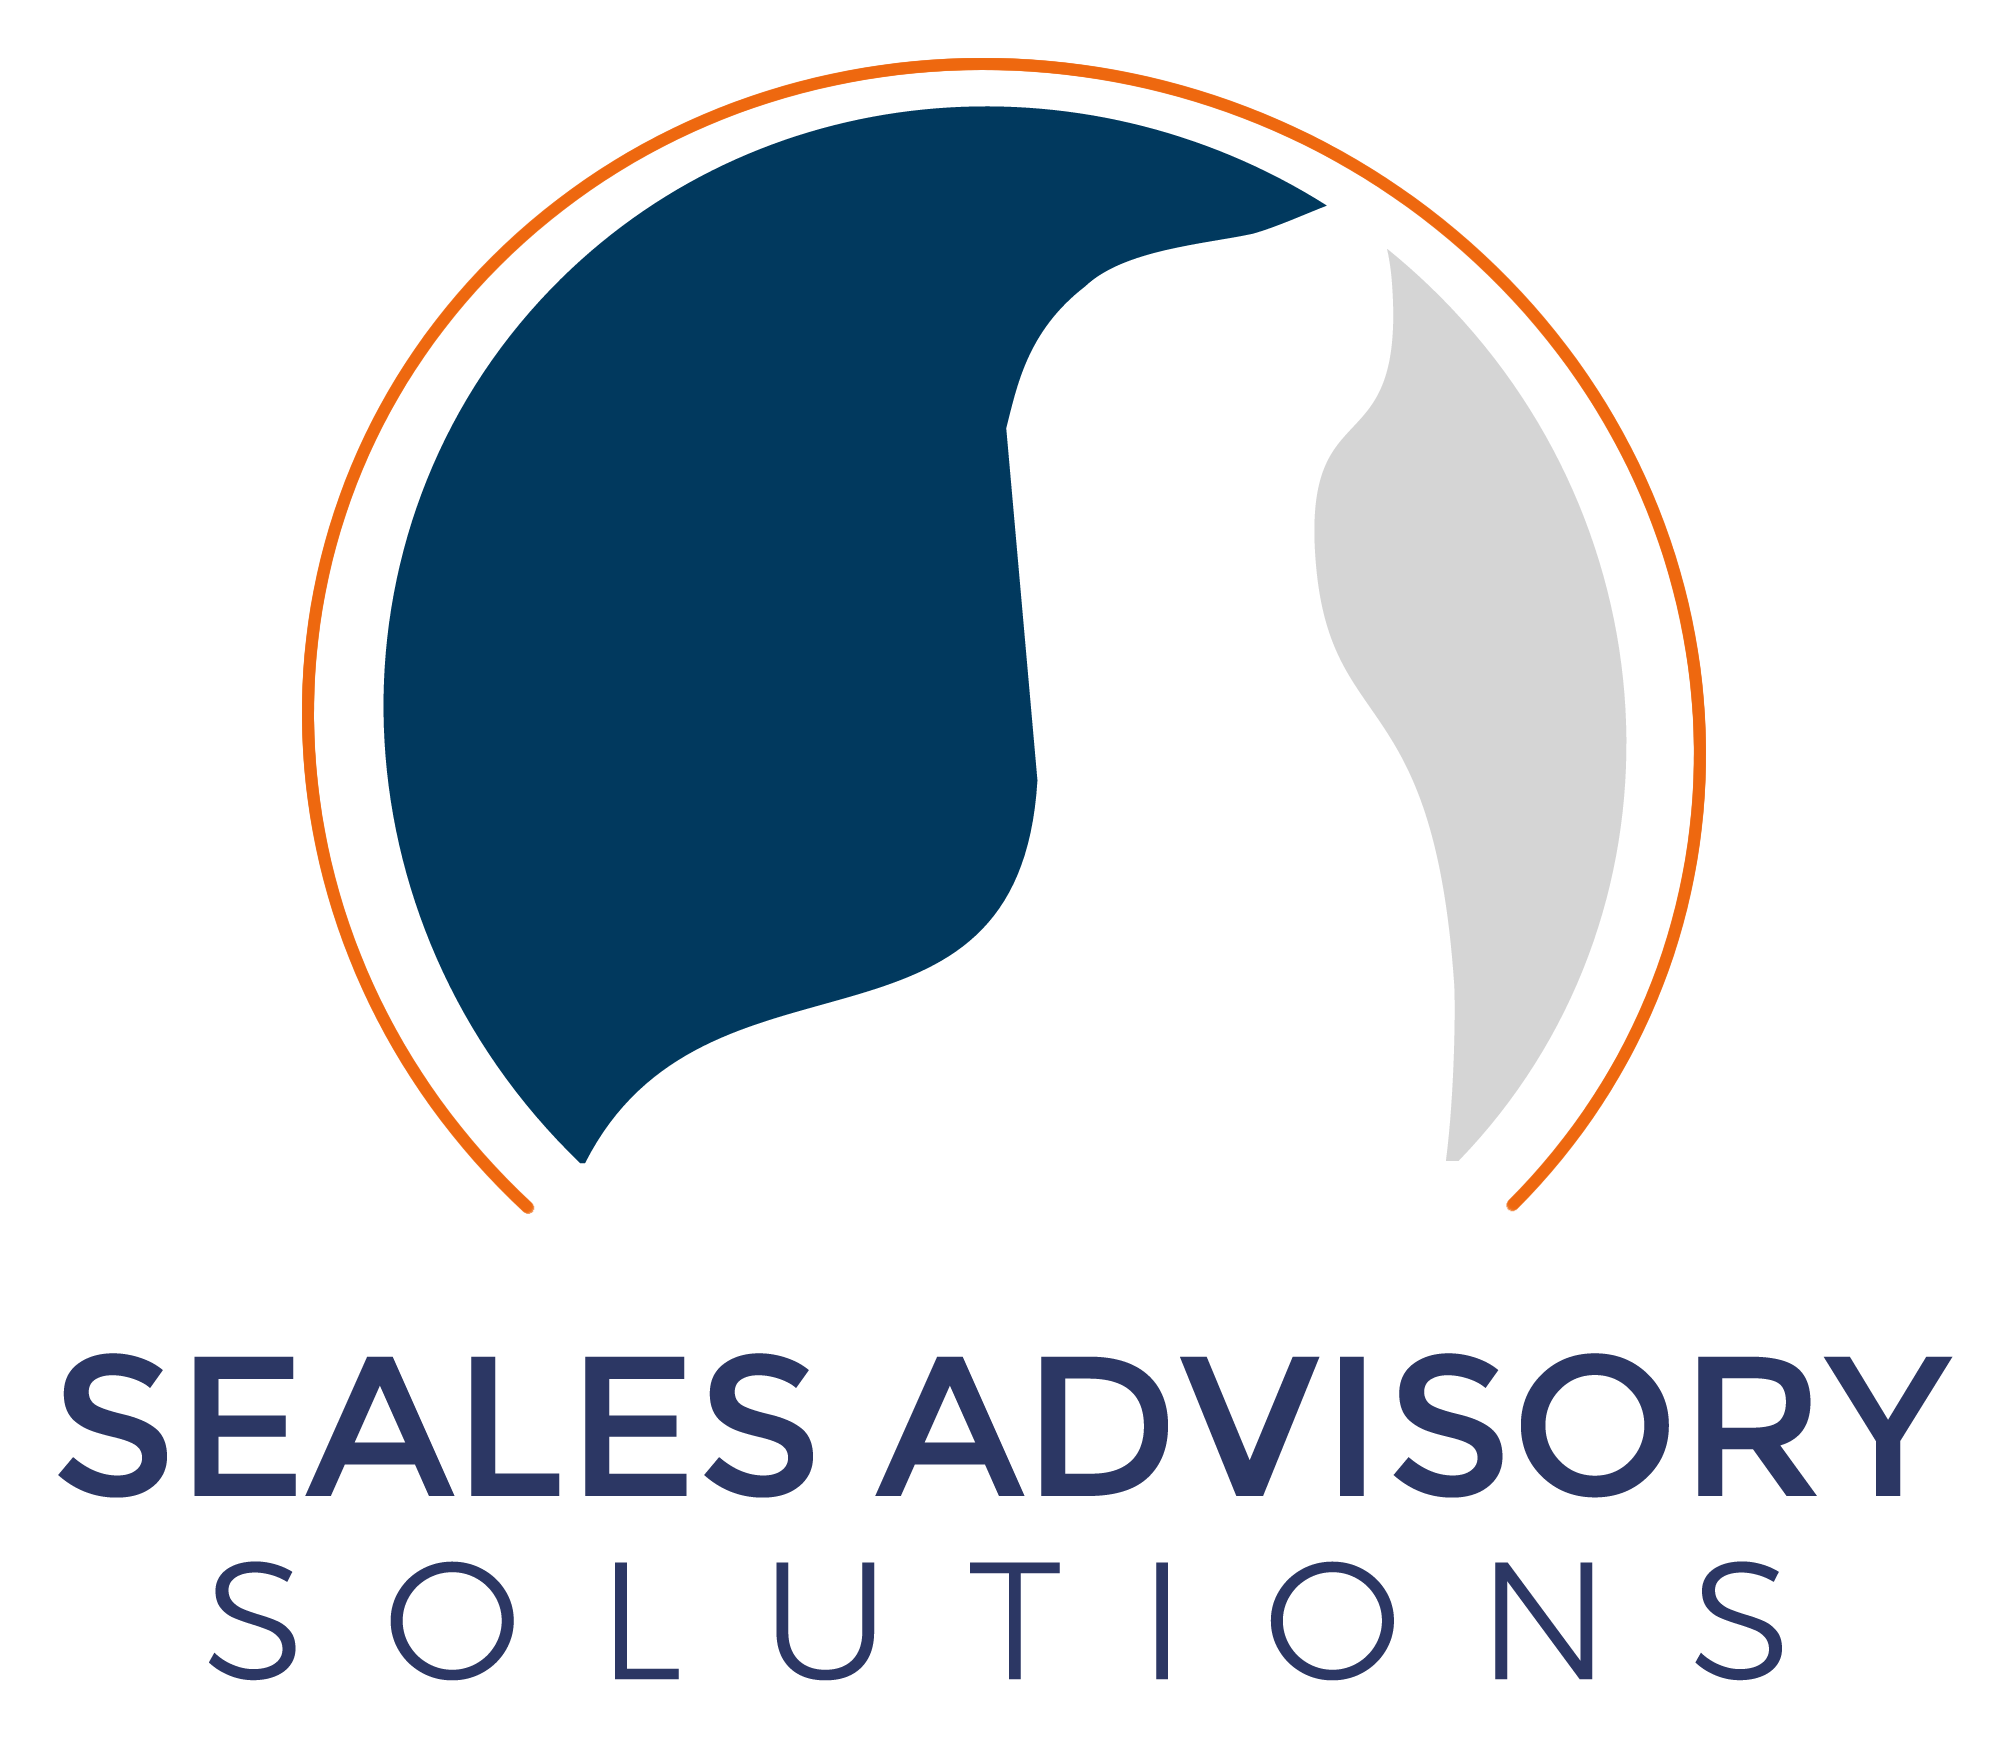 Seales Advisory Solutions Project